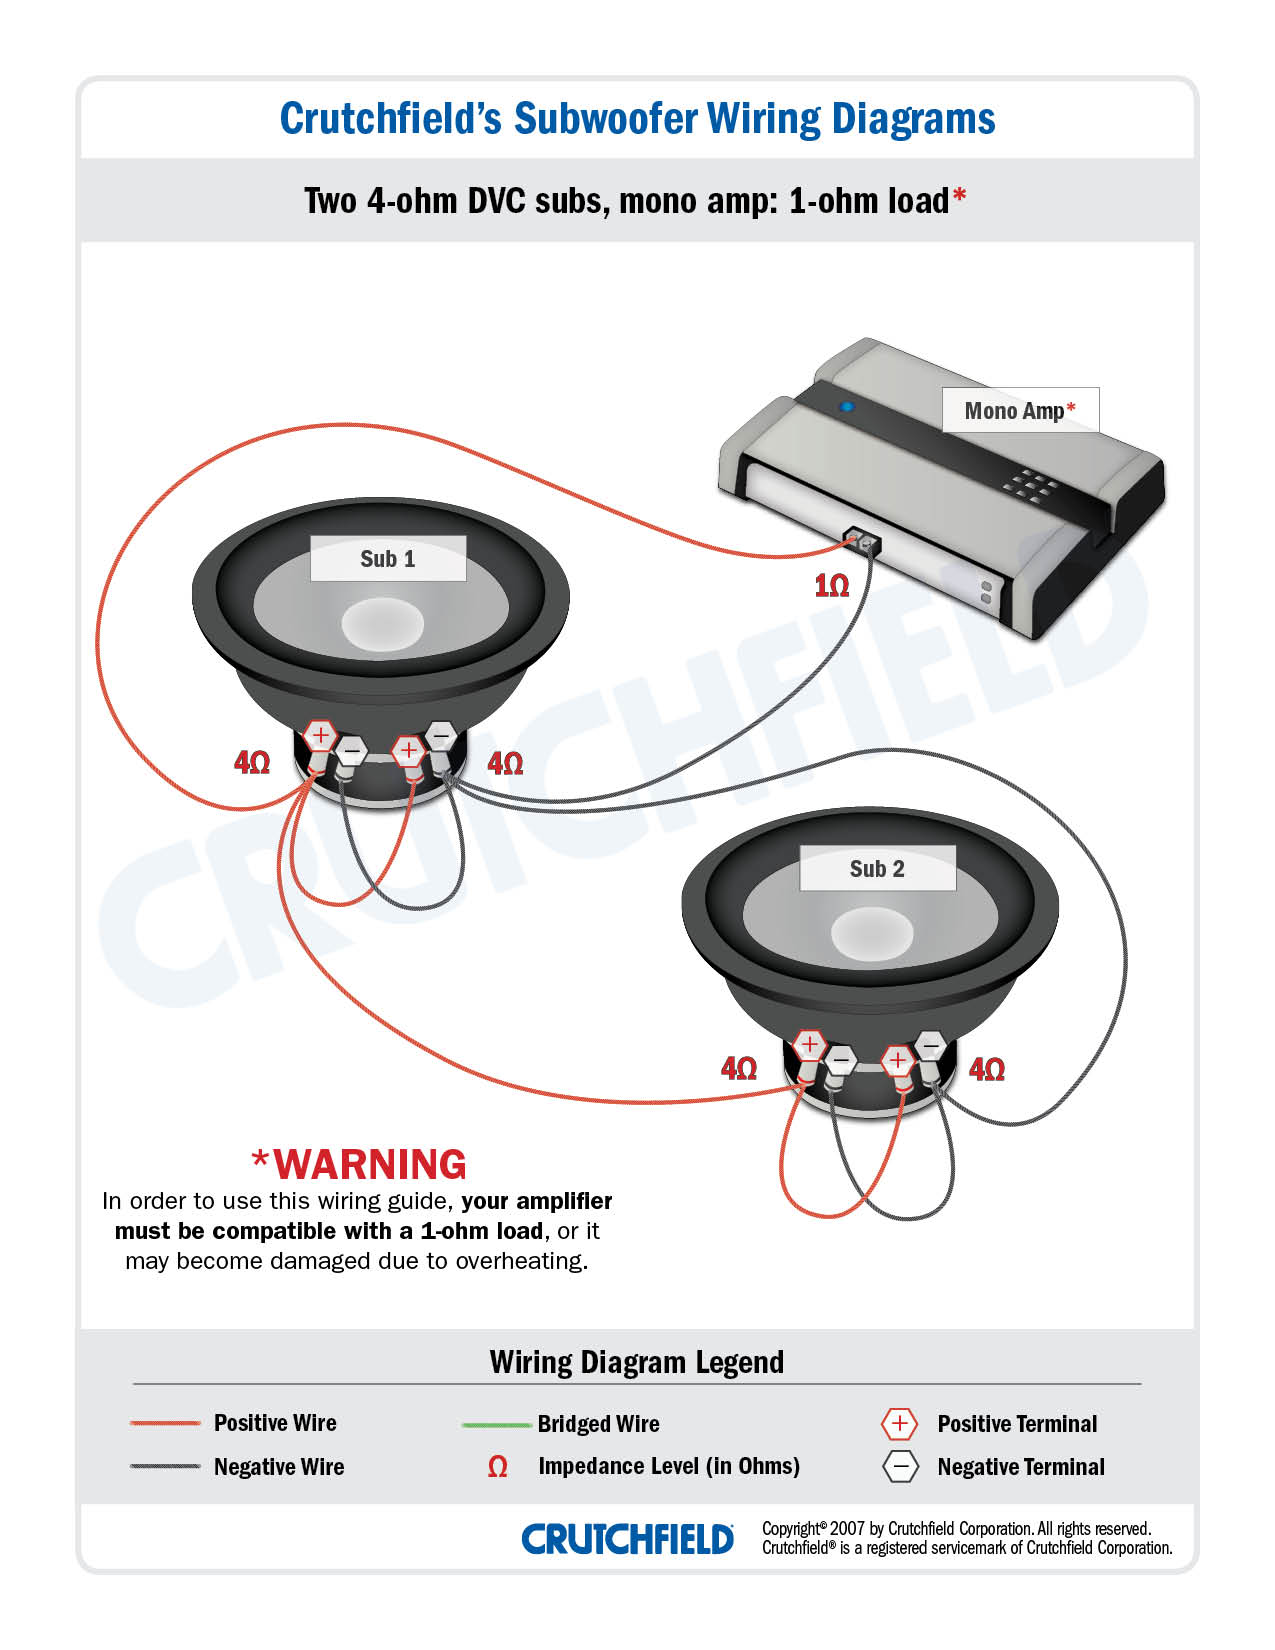 Subwoofer wiring diagrams kasey i recommend wiring two subs to each amp like this swarovskicordoba